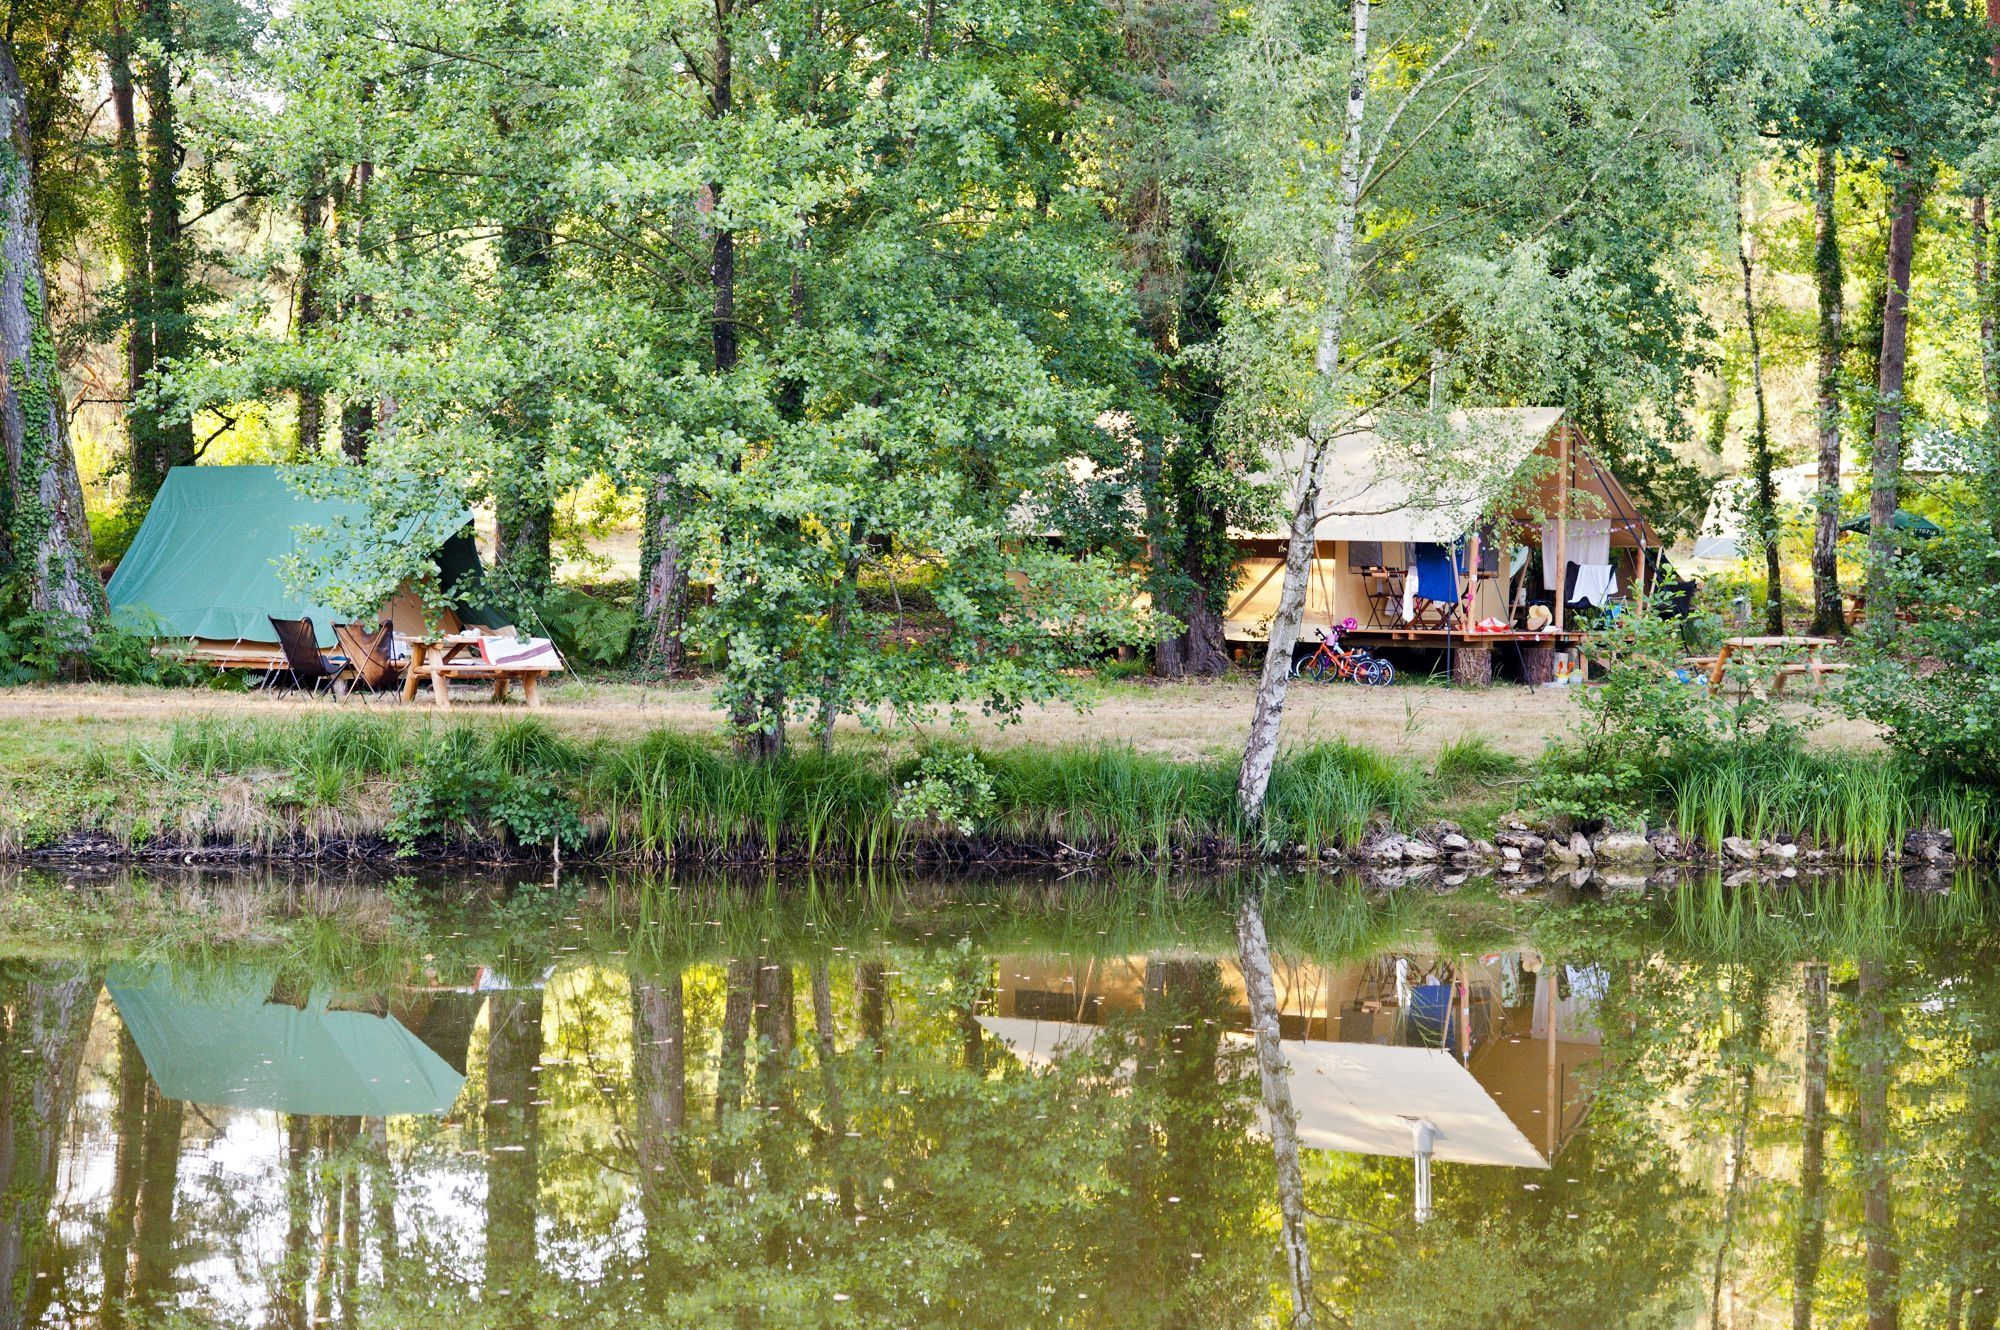 The Best Riverside Campsites in France